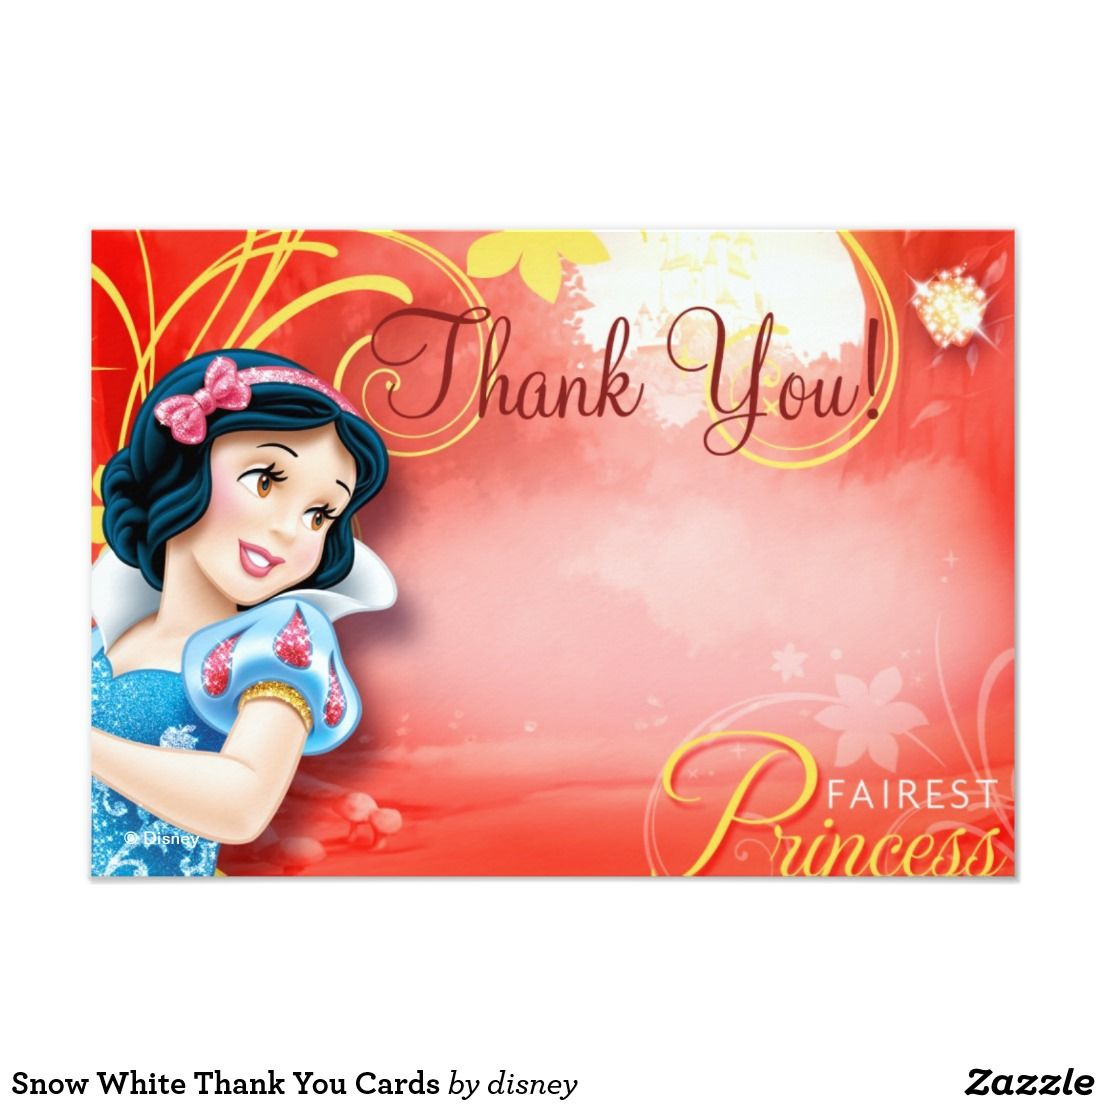 Snow White Thank You Cards | Disney birthday